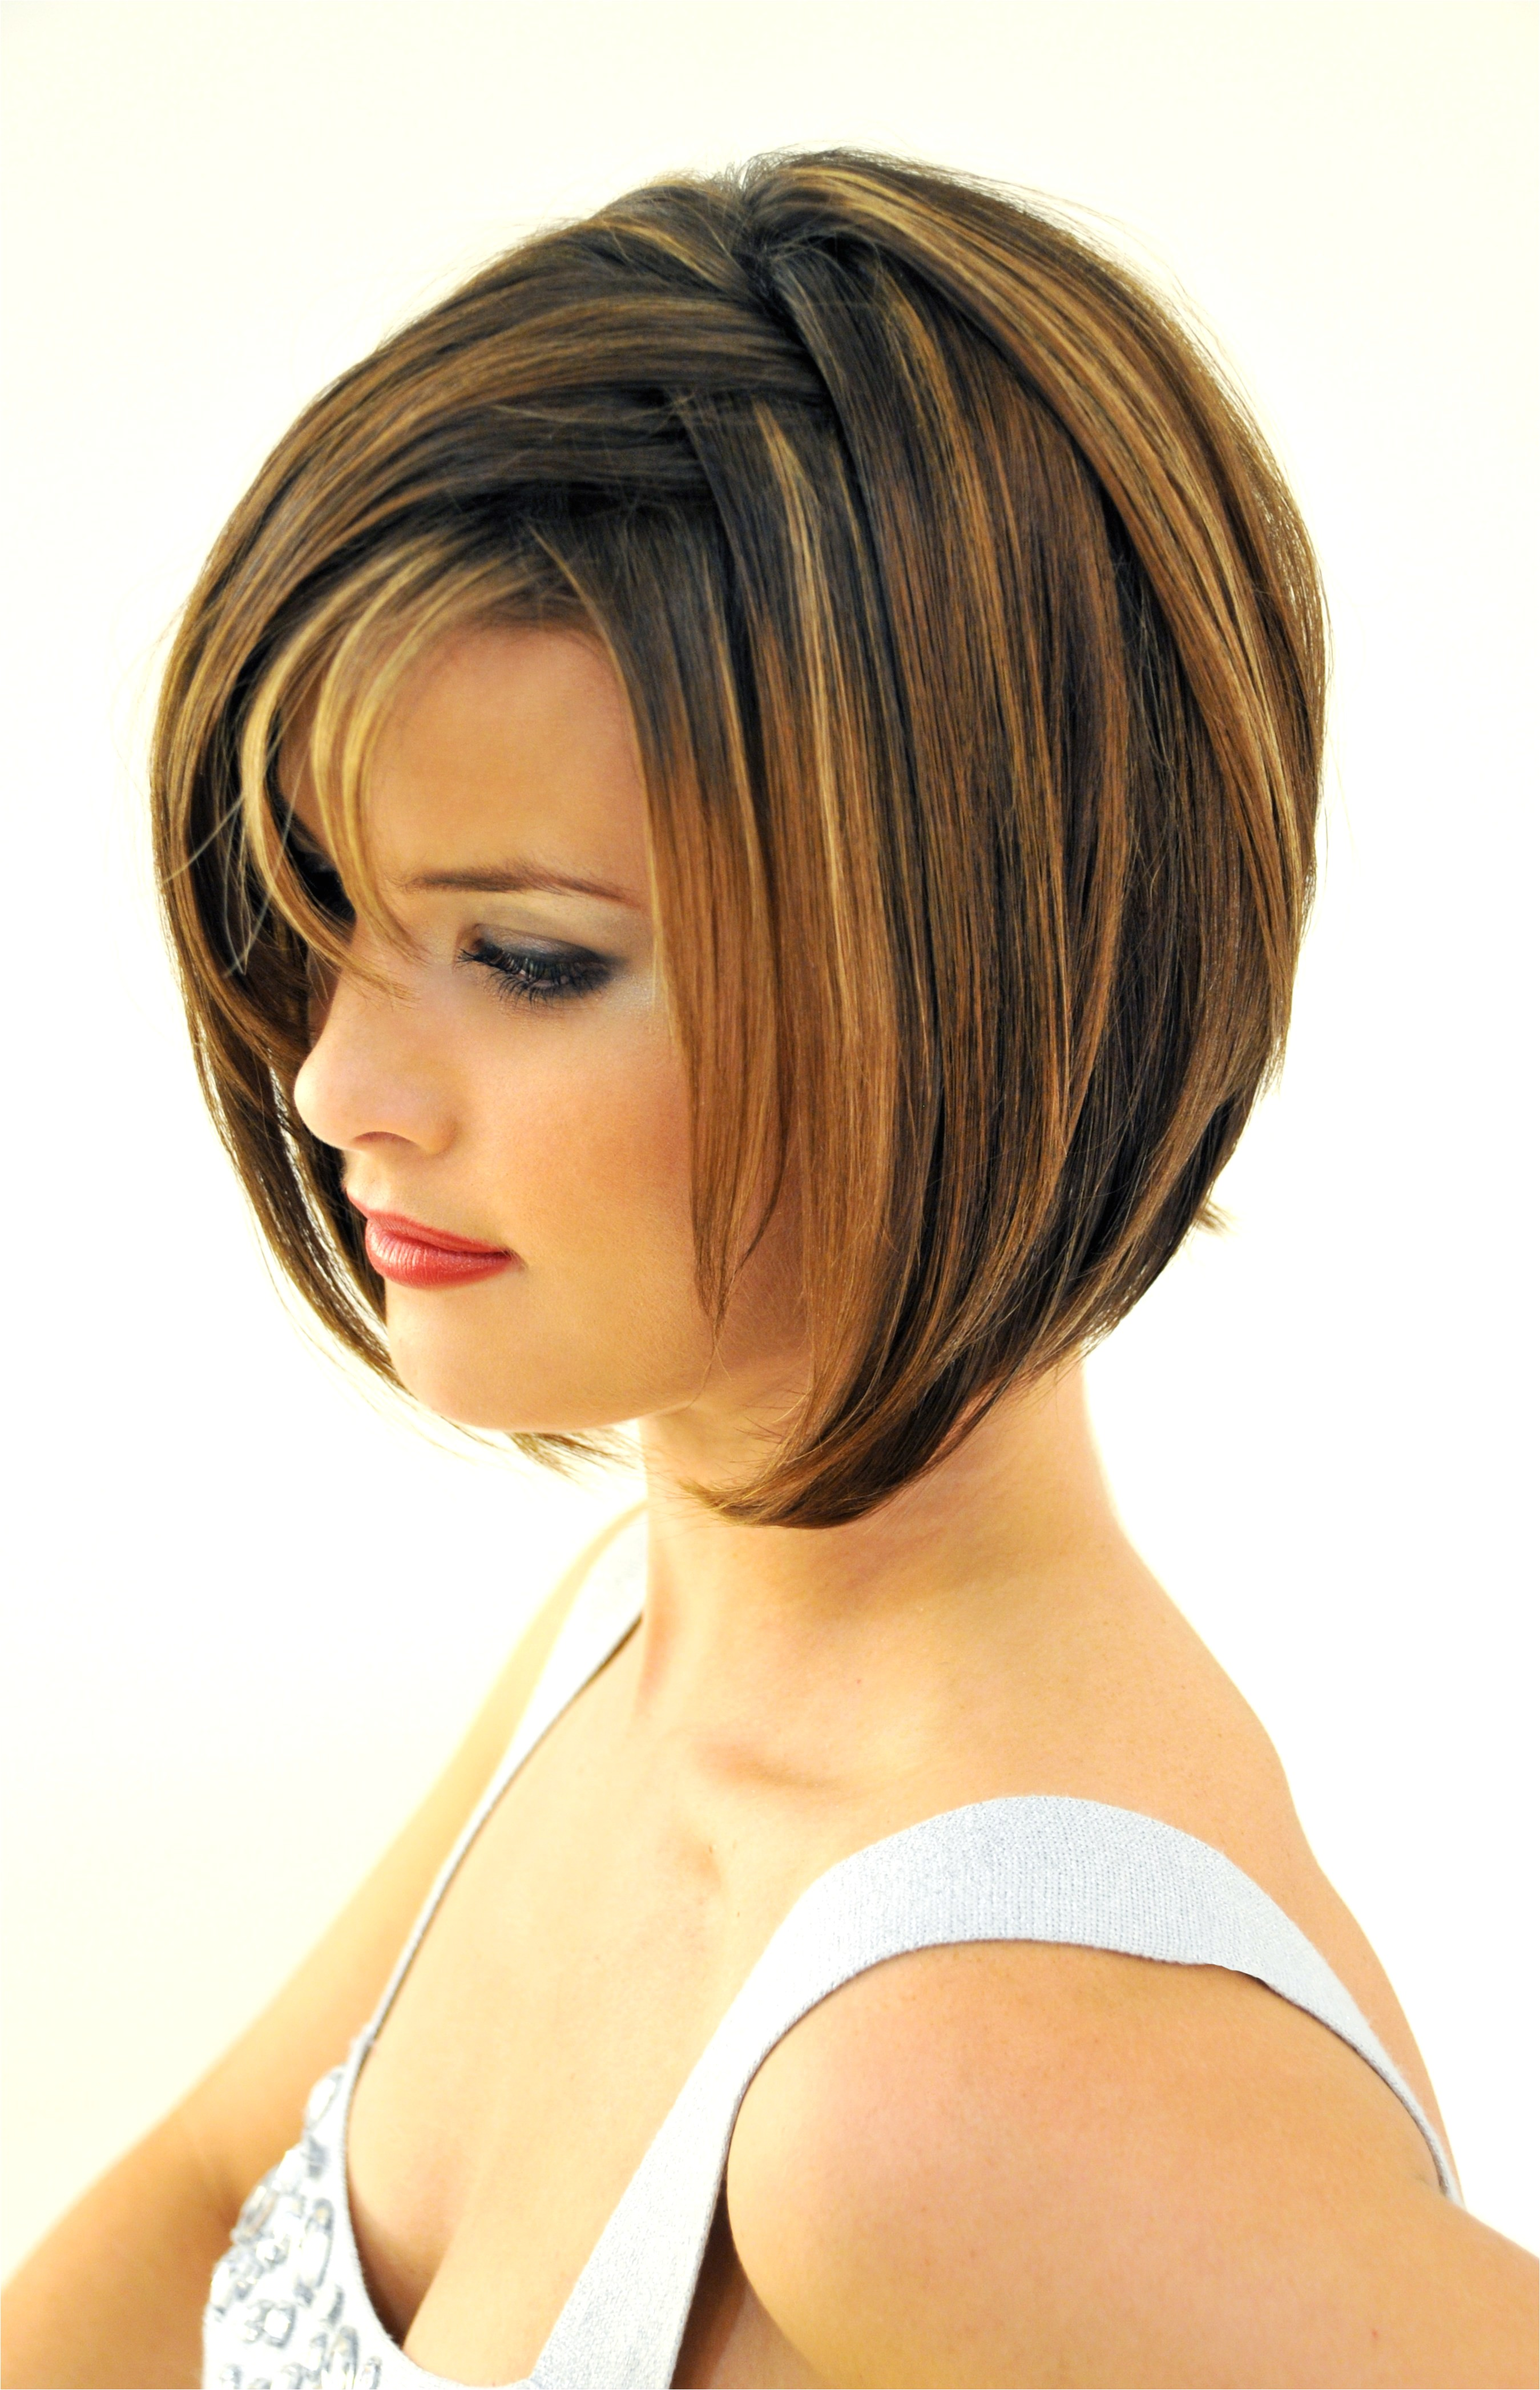 Bobbed Layered Haircuts Short Bob Hairstyles with Bangs 4 Perfect Ideas for You